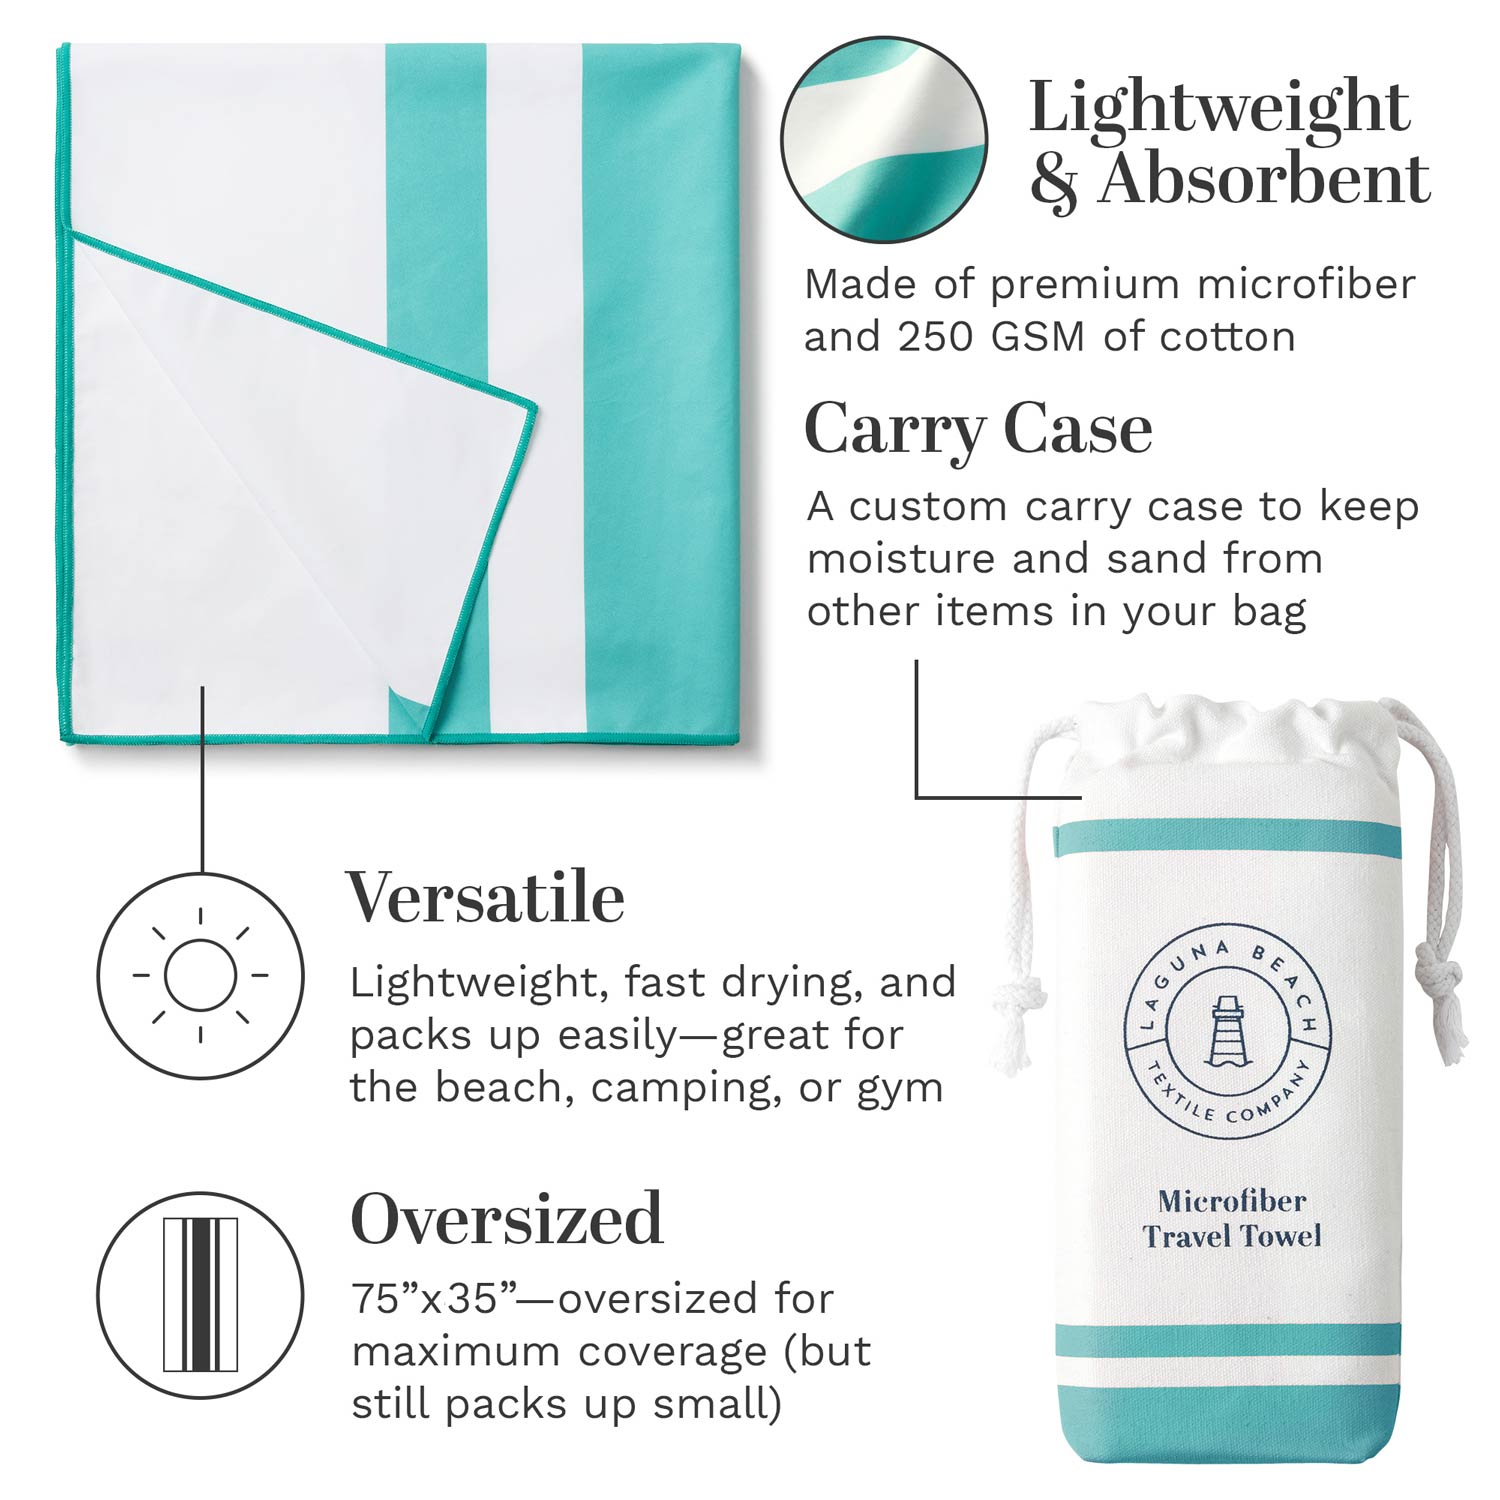 Infographic for turquoise green microfiber beach towel highlighting how it is oversized, lightweight, and absorbent.